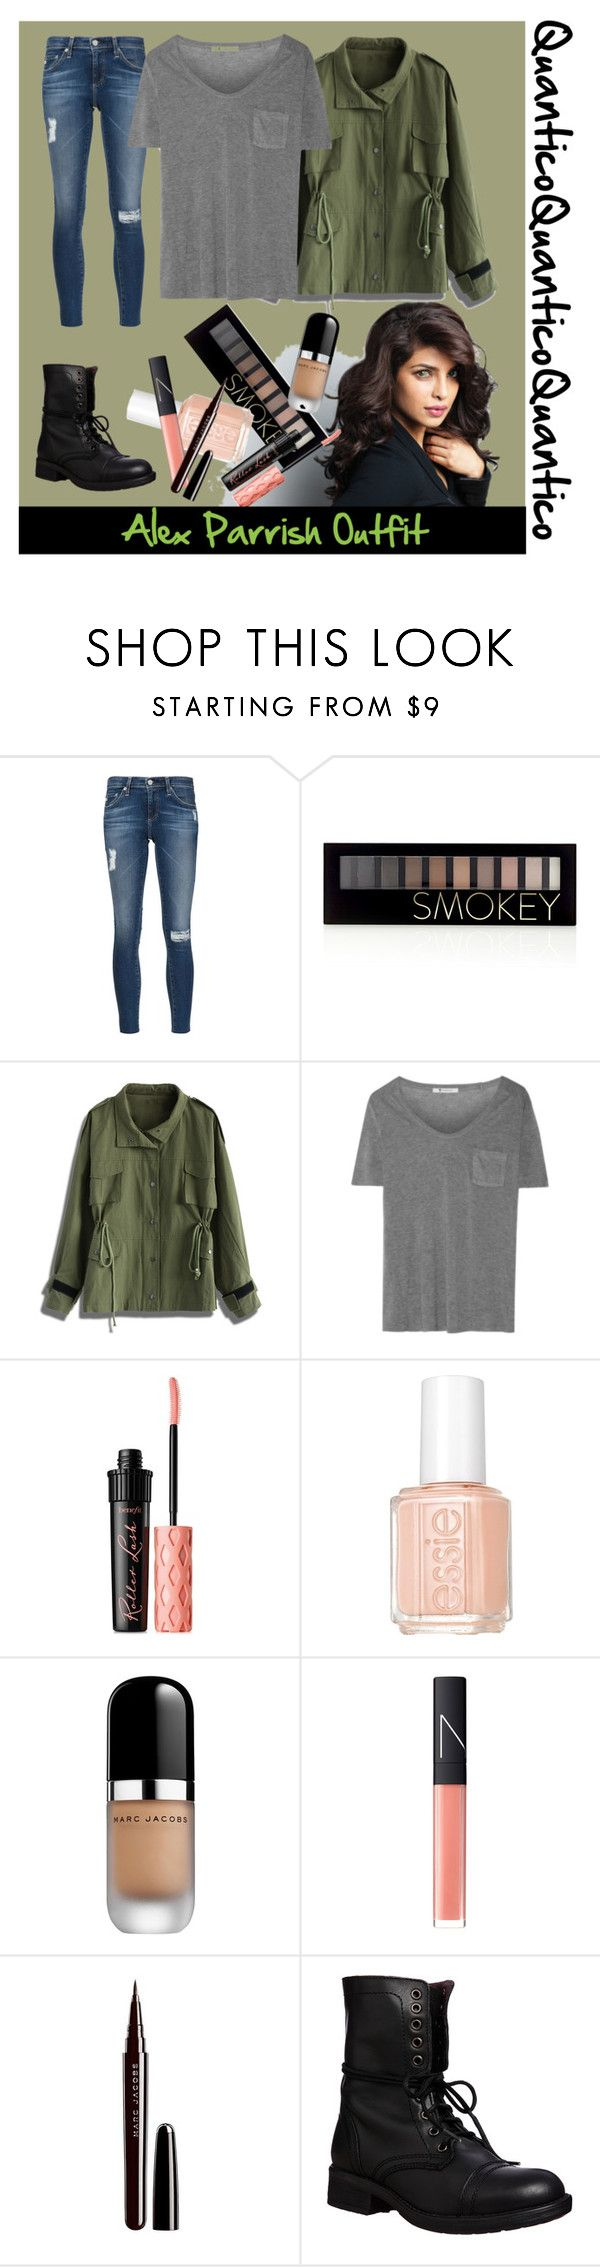 """""""Alex Parrish Outfit"""" by cheyy528 ❤ liked on Polyvore featuring AG Adriano Goldschmied, Forever 21, Chicwish, T By Alexander Wang, Benefit, Essie, Marc Jacobs, NARS Cosmetics and Steve Madden"""